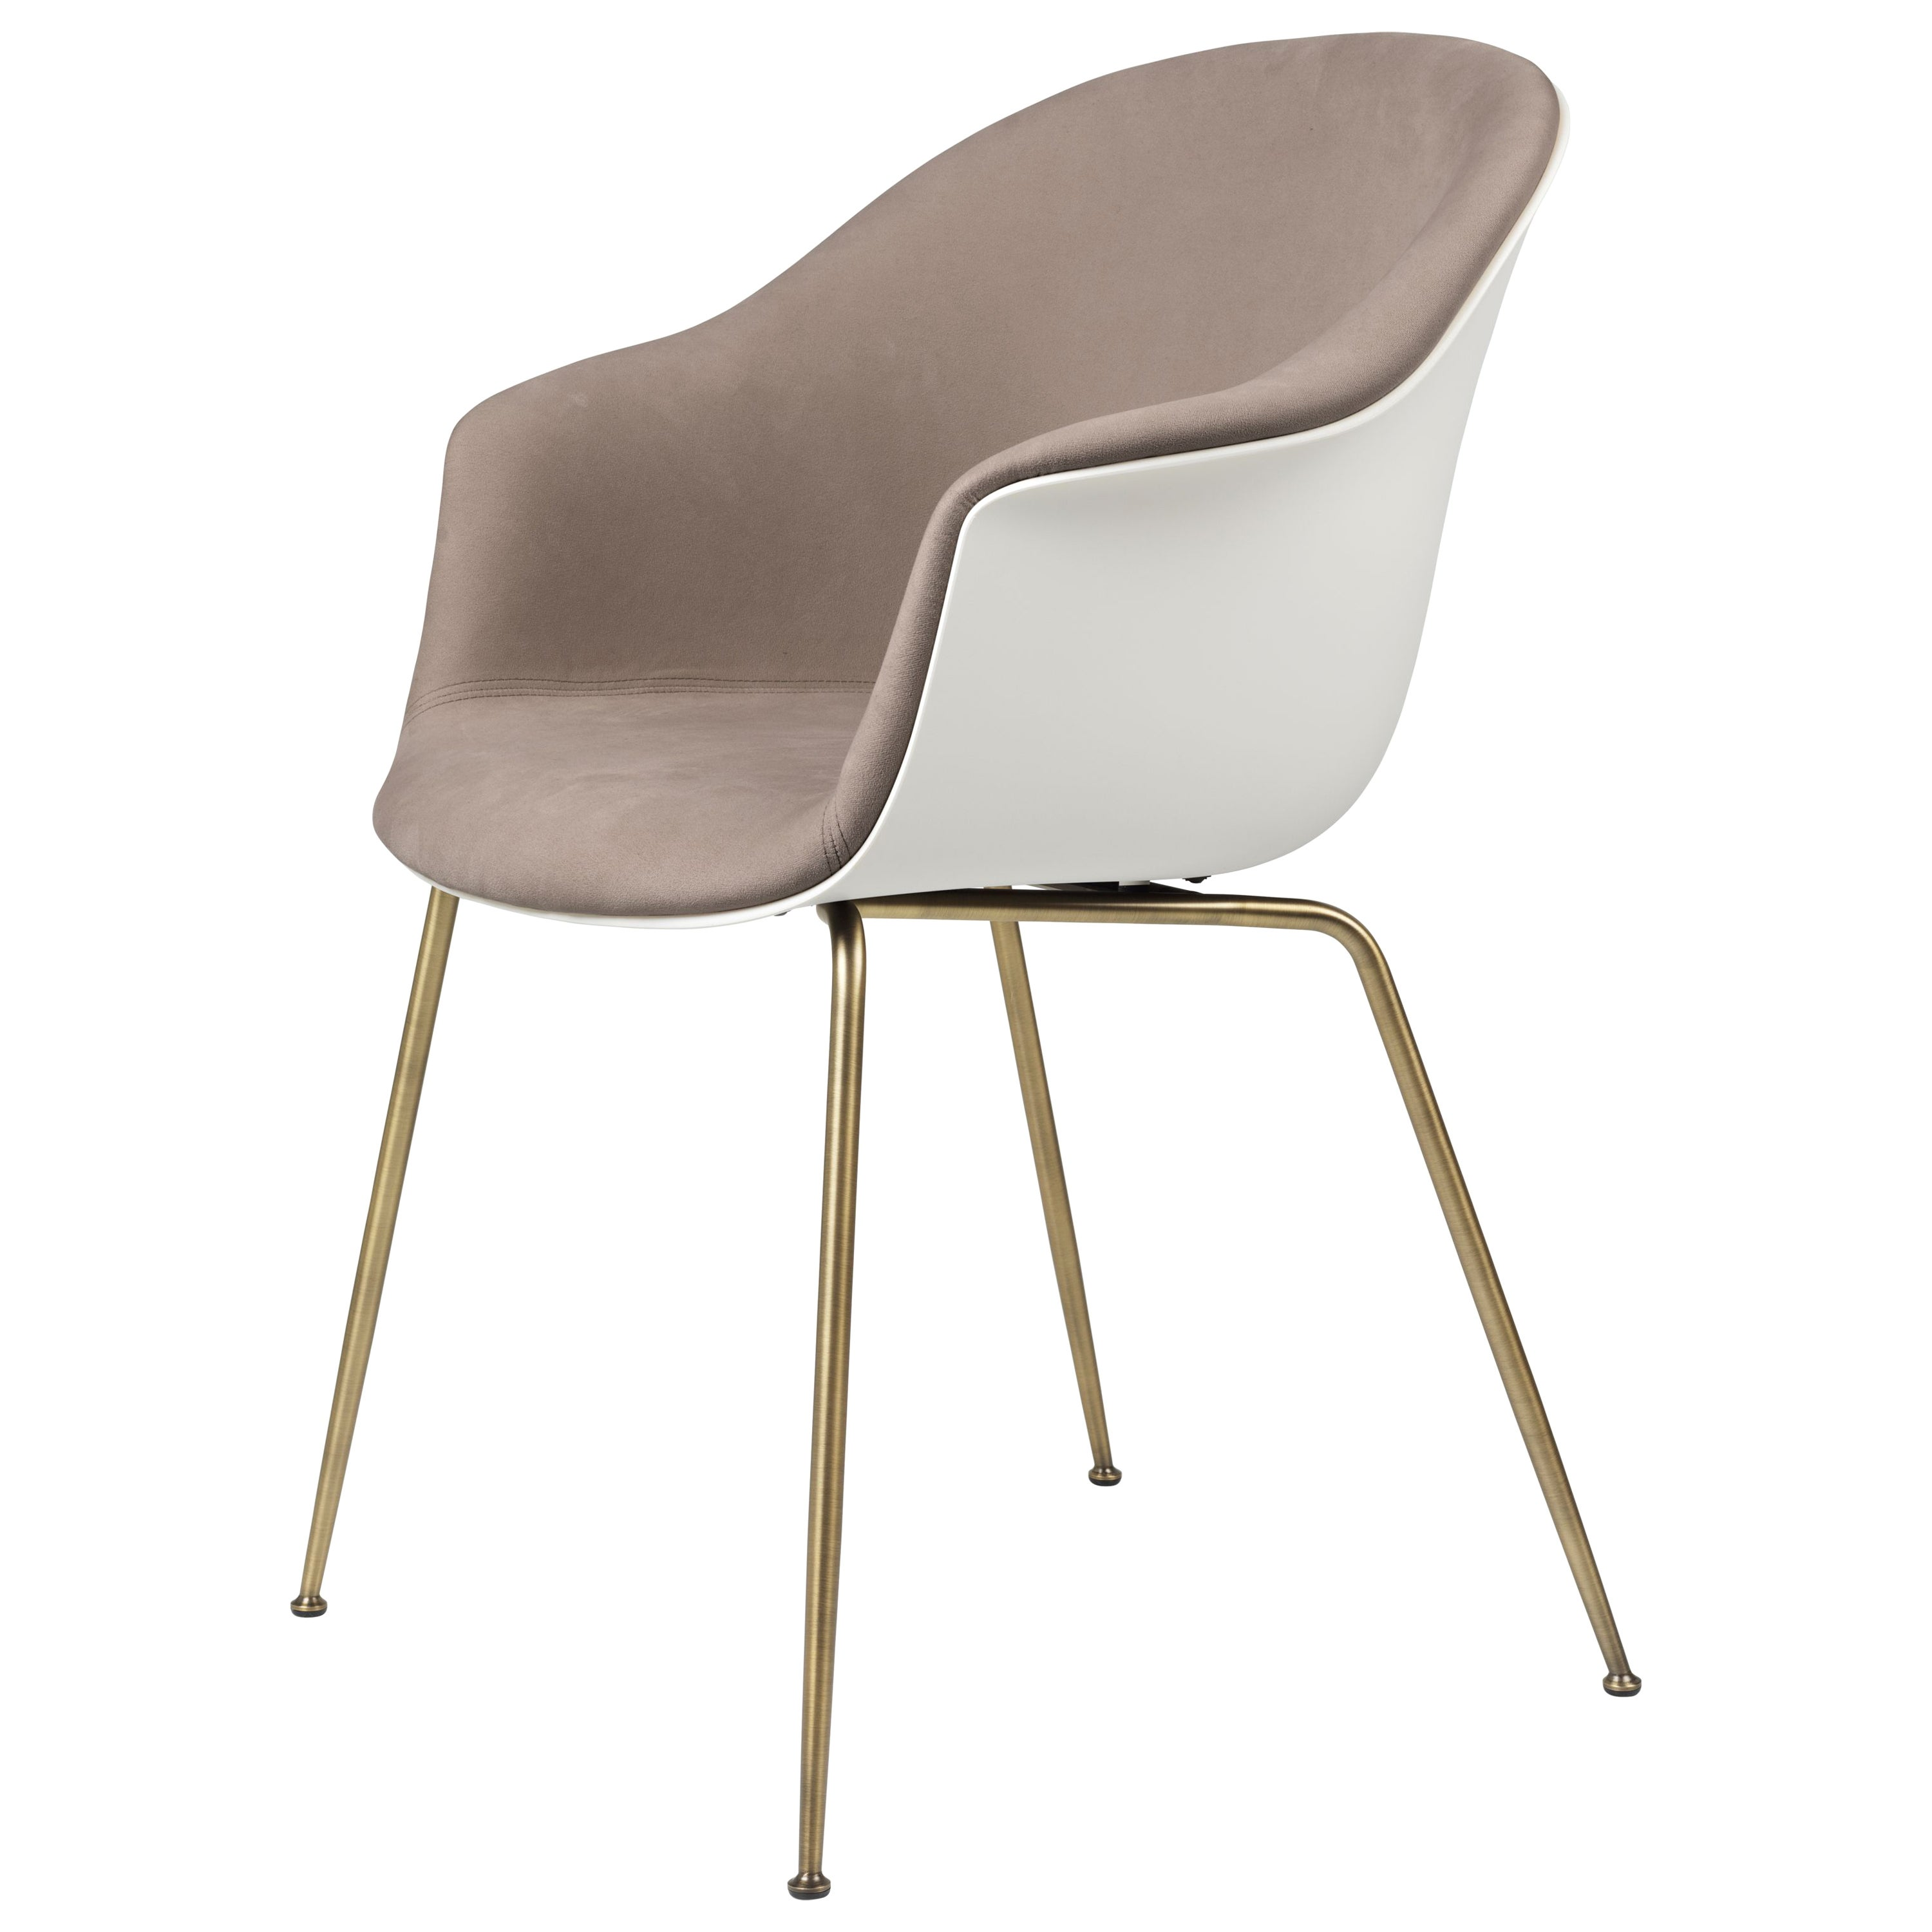 GamFratesi 'Bat' Dining Chair in Brown and White with Antique Brass Conic Base